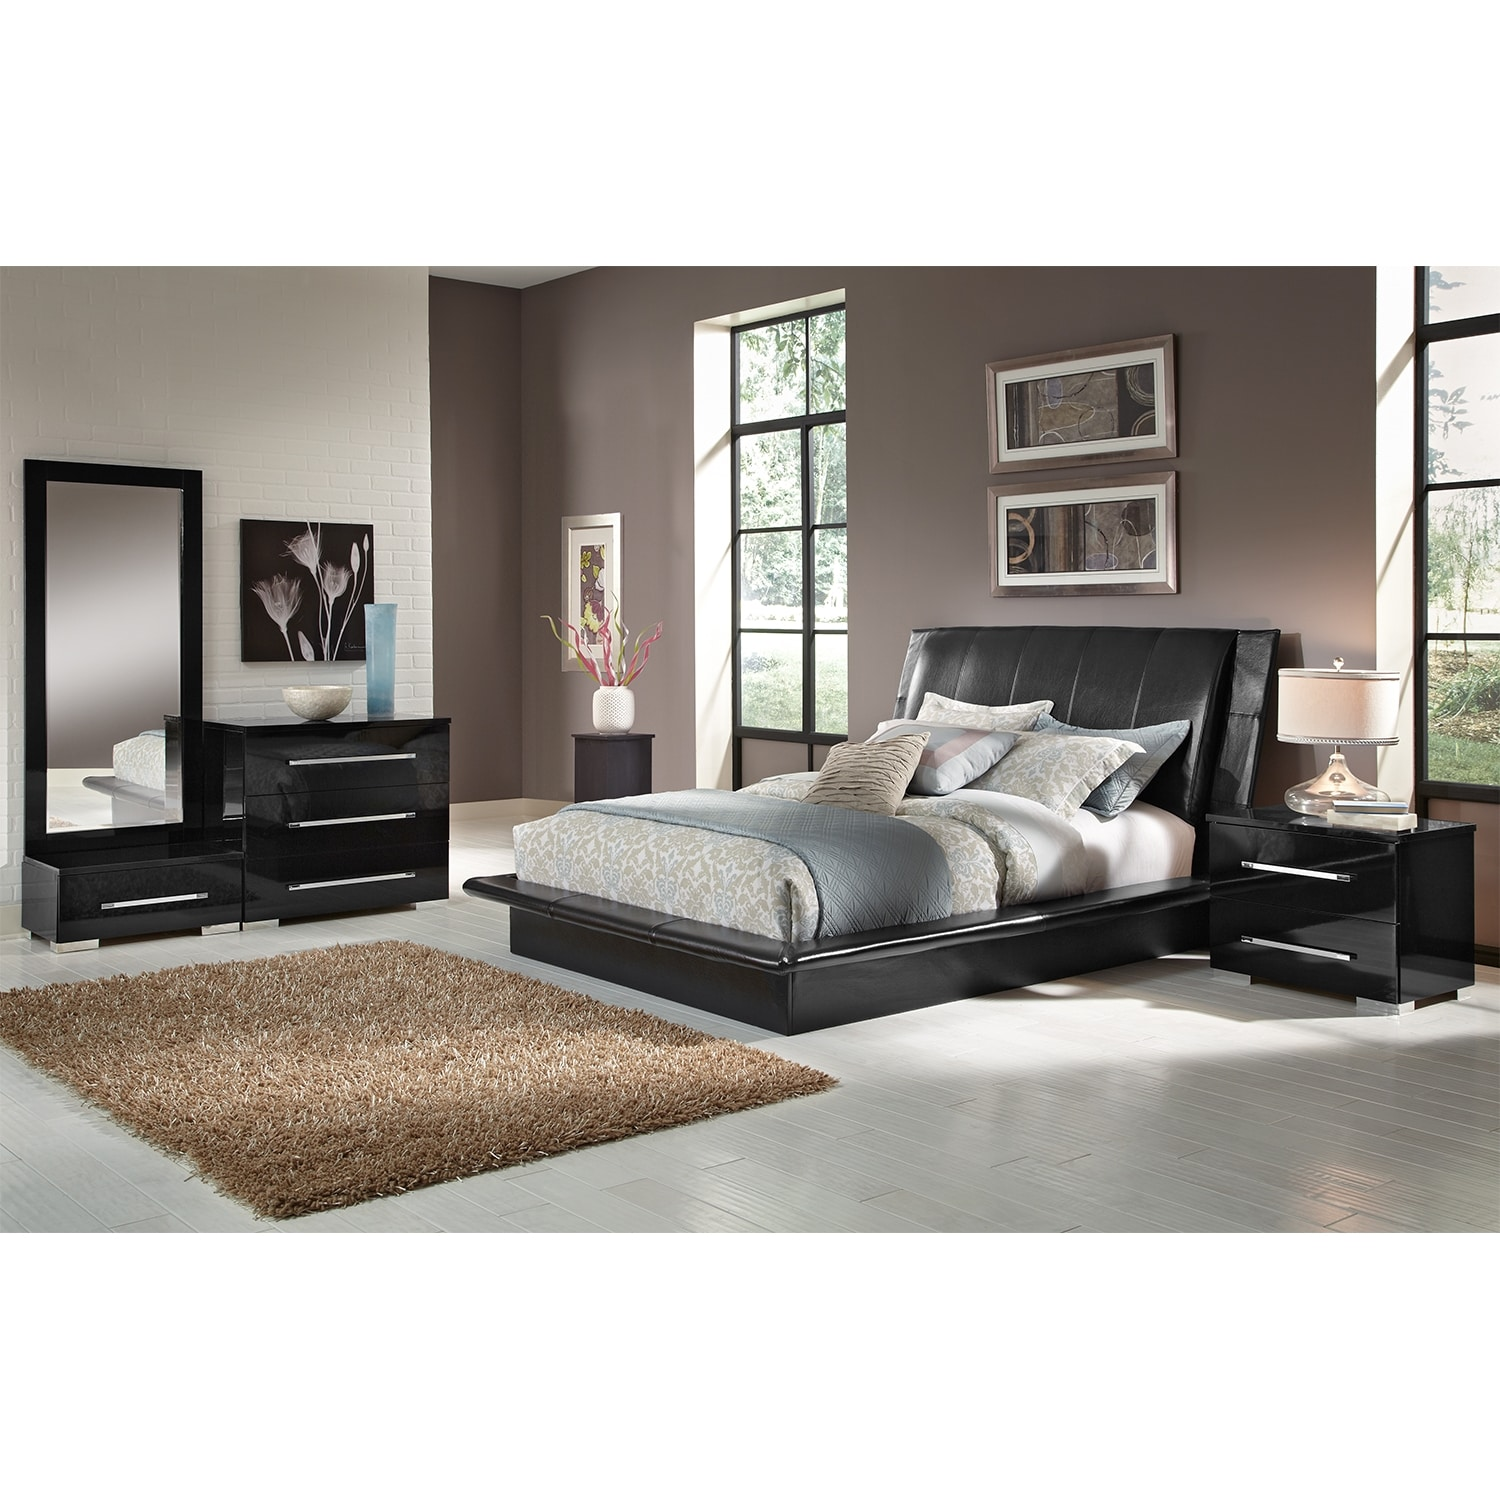 Dimora Black 6 Pc King Bedroom Alternate Value City